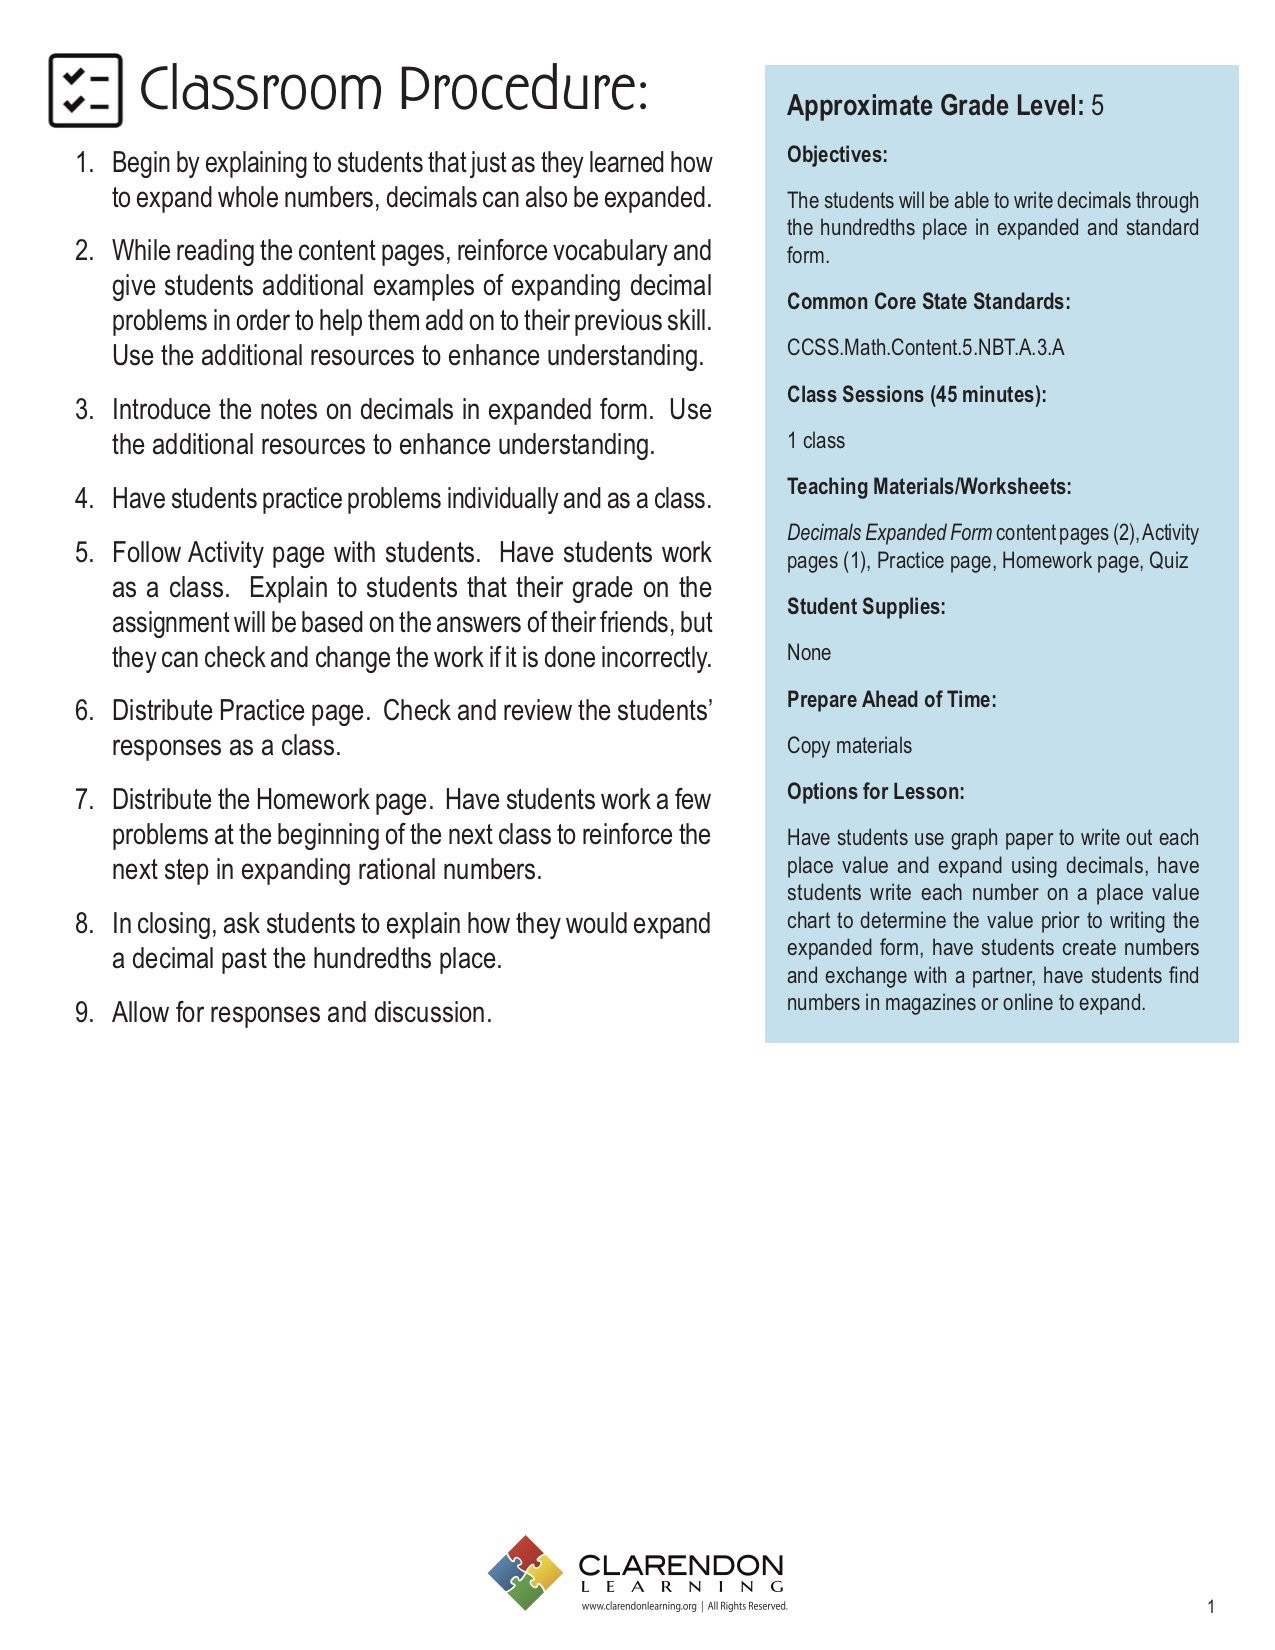 5th Grade Expanded form Worksheets Decimals Expanded form Lesson Plan